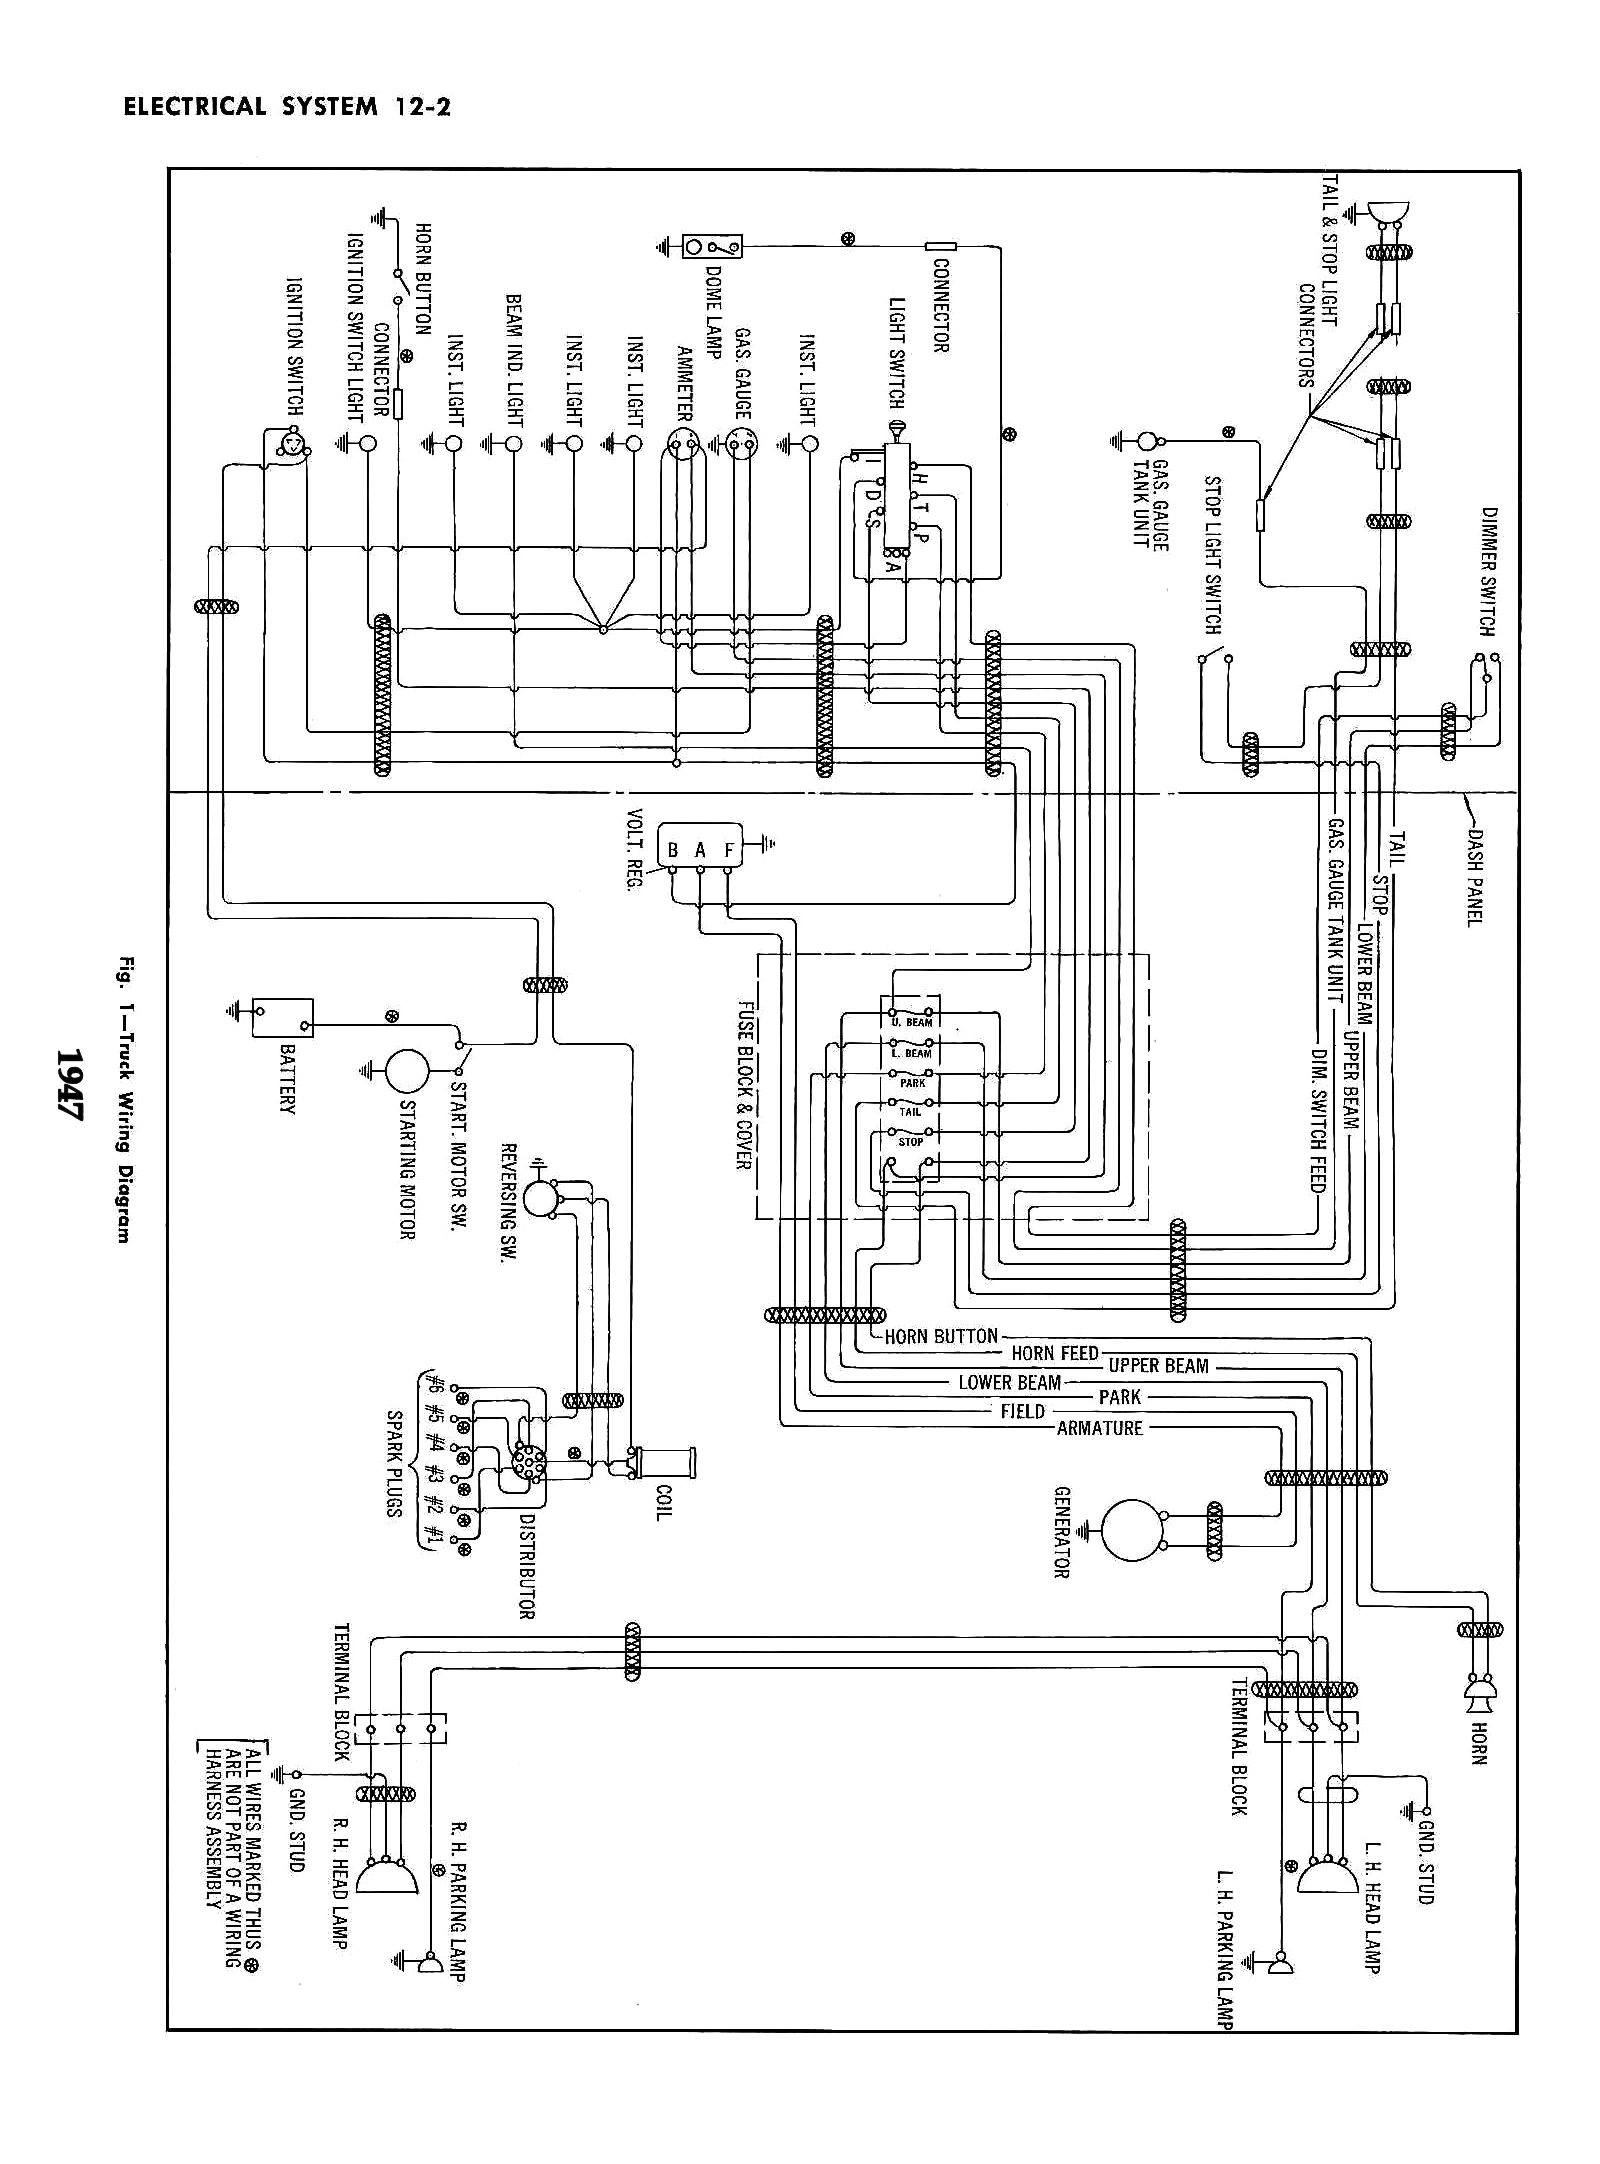 67 Chevy Truck Diagram Of Engine